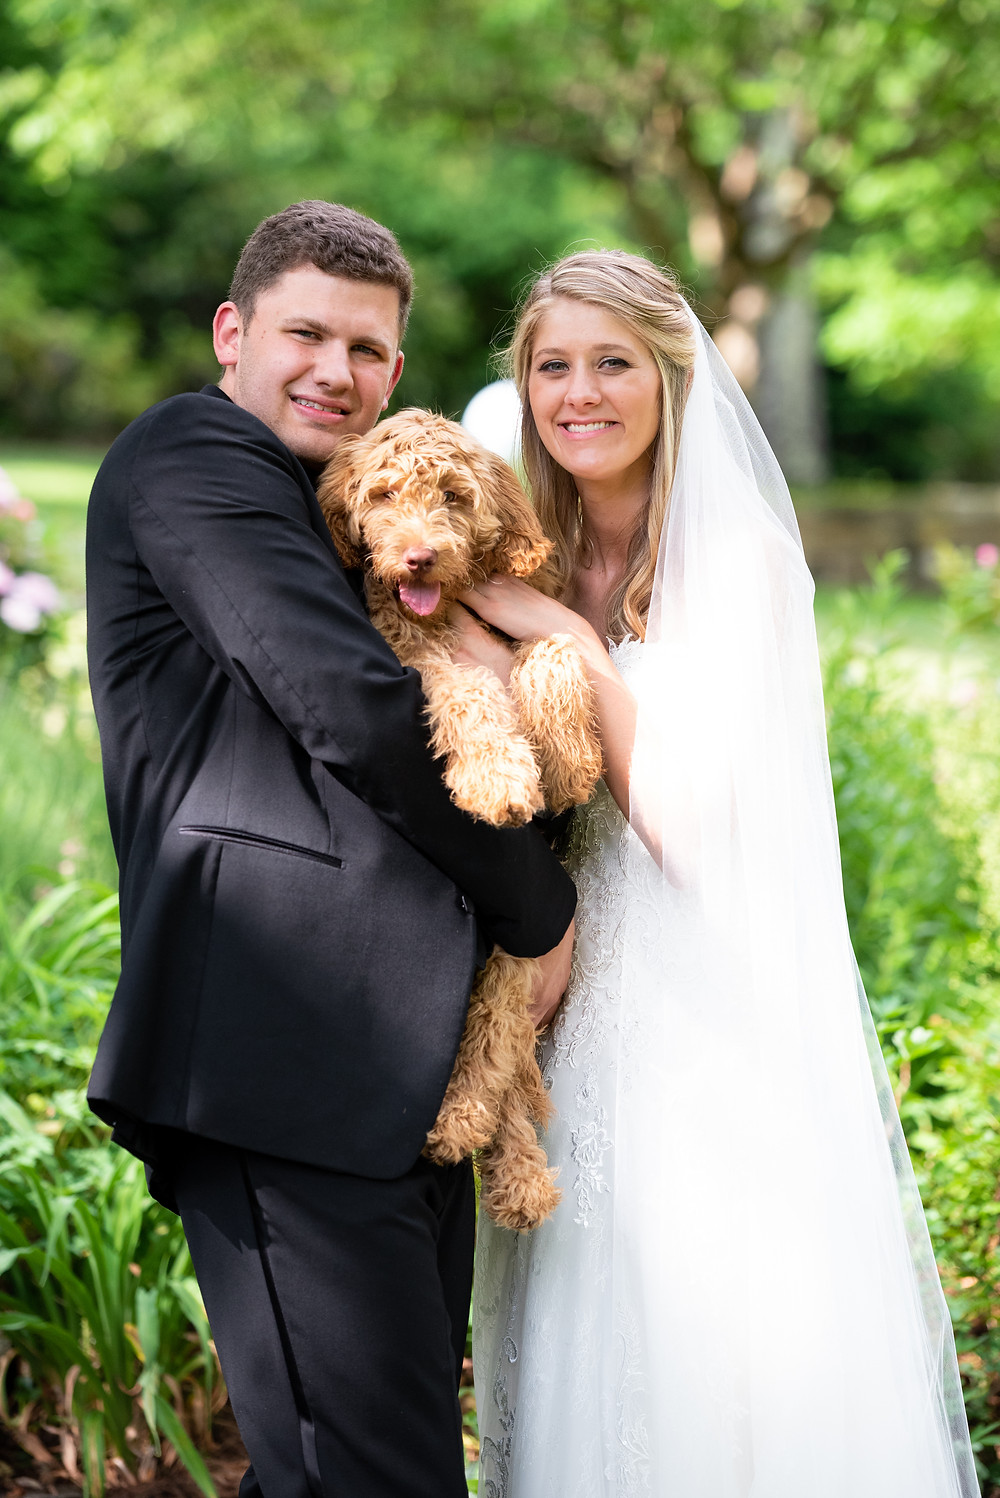 Bride and groom photos with their dog